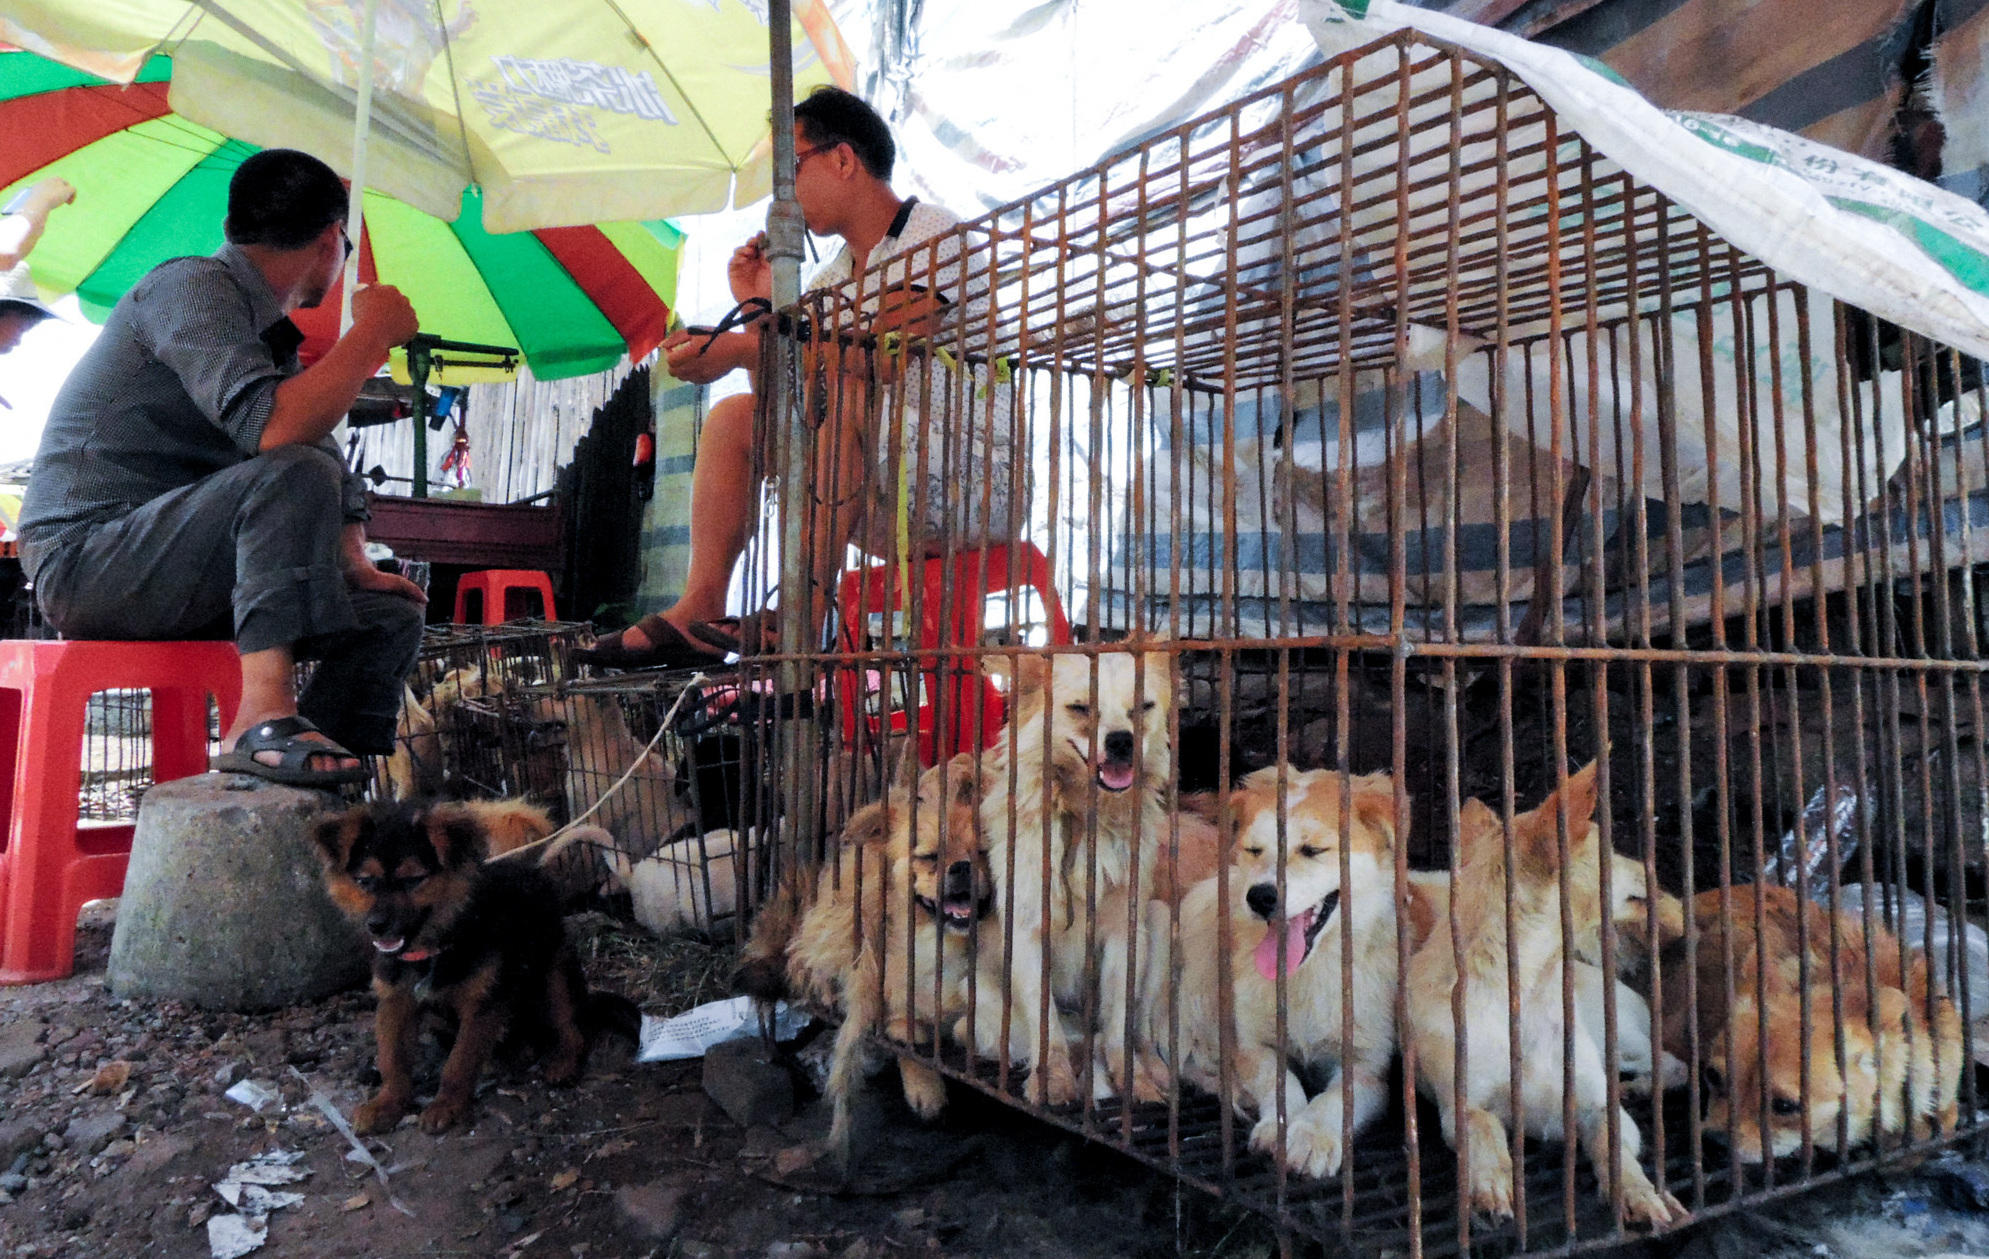 China's Dog Meat Festival Will Go On Despite Growing ... - photo#32